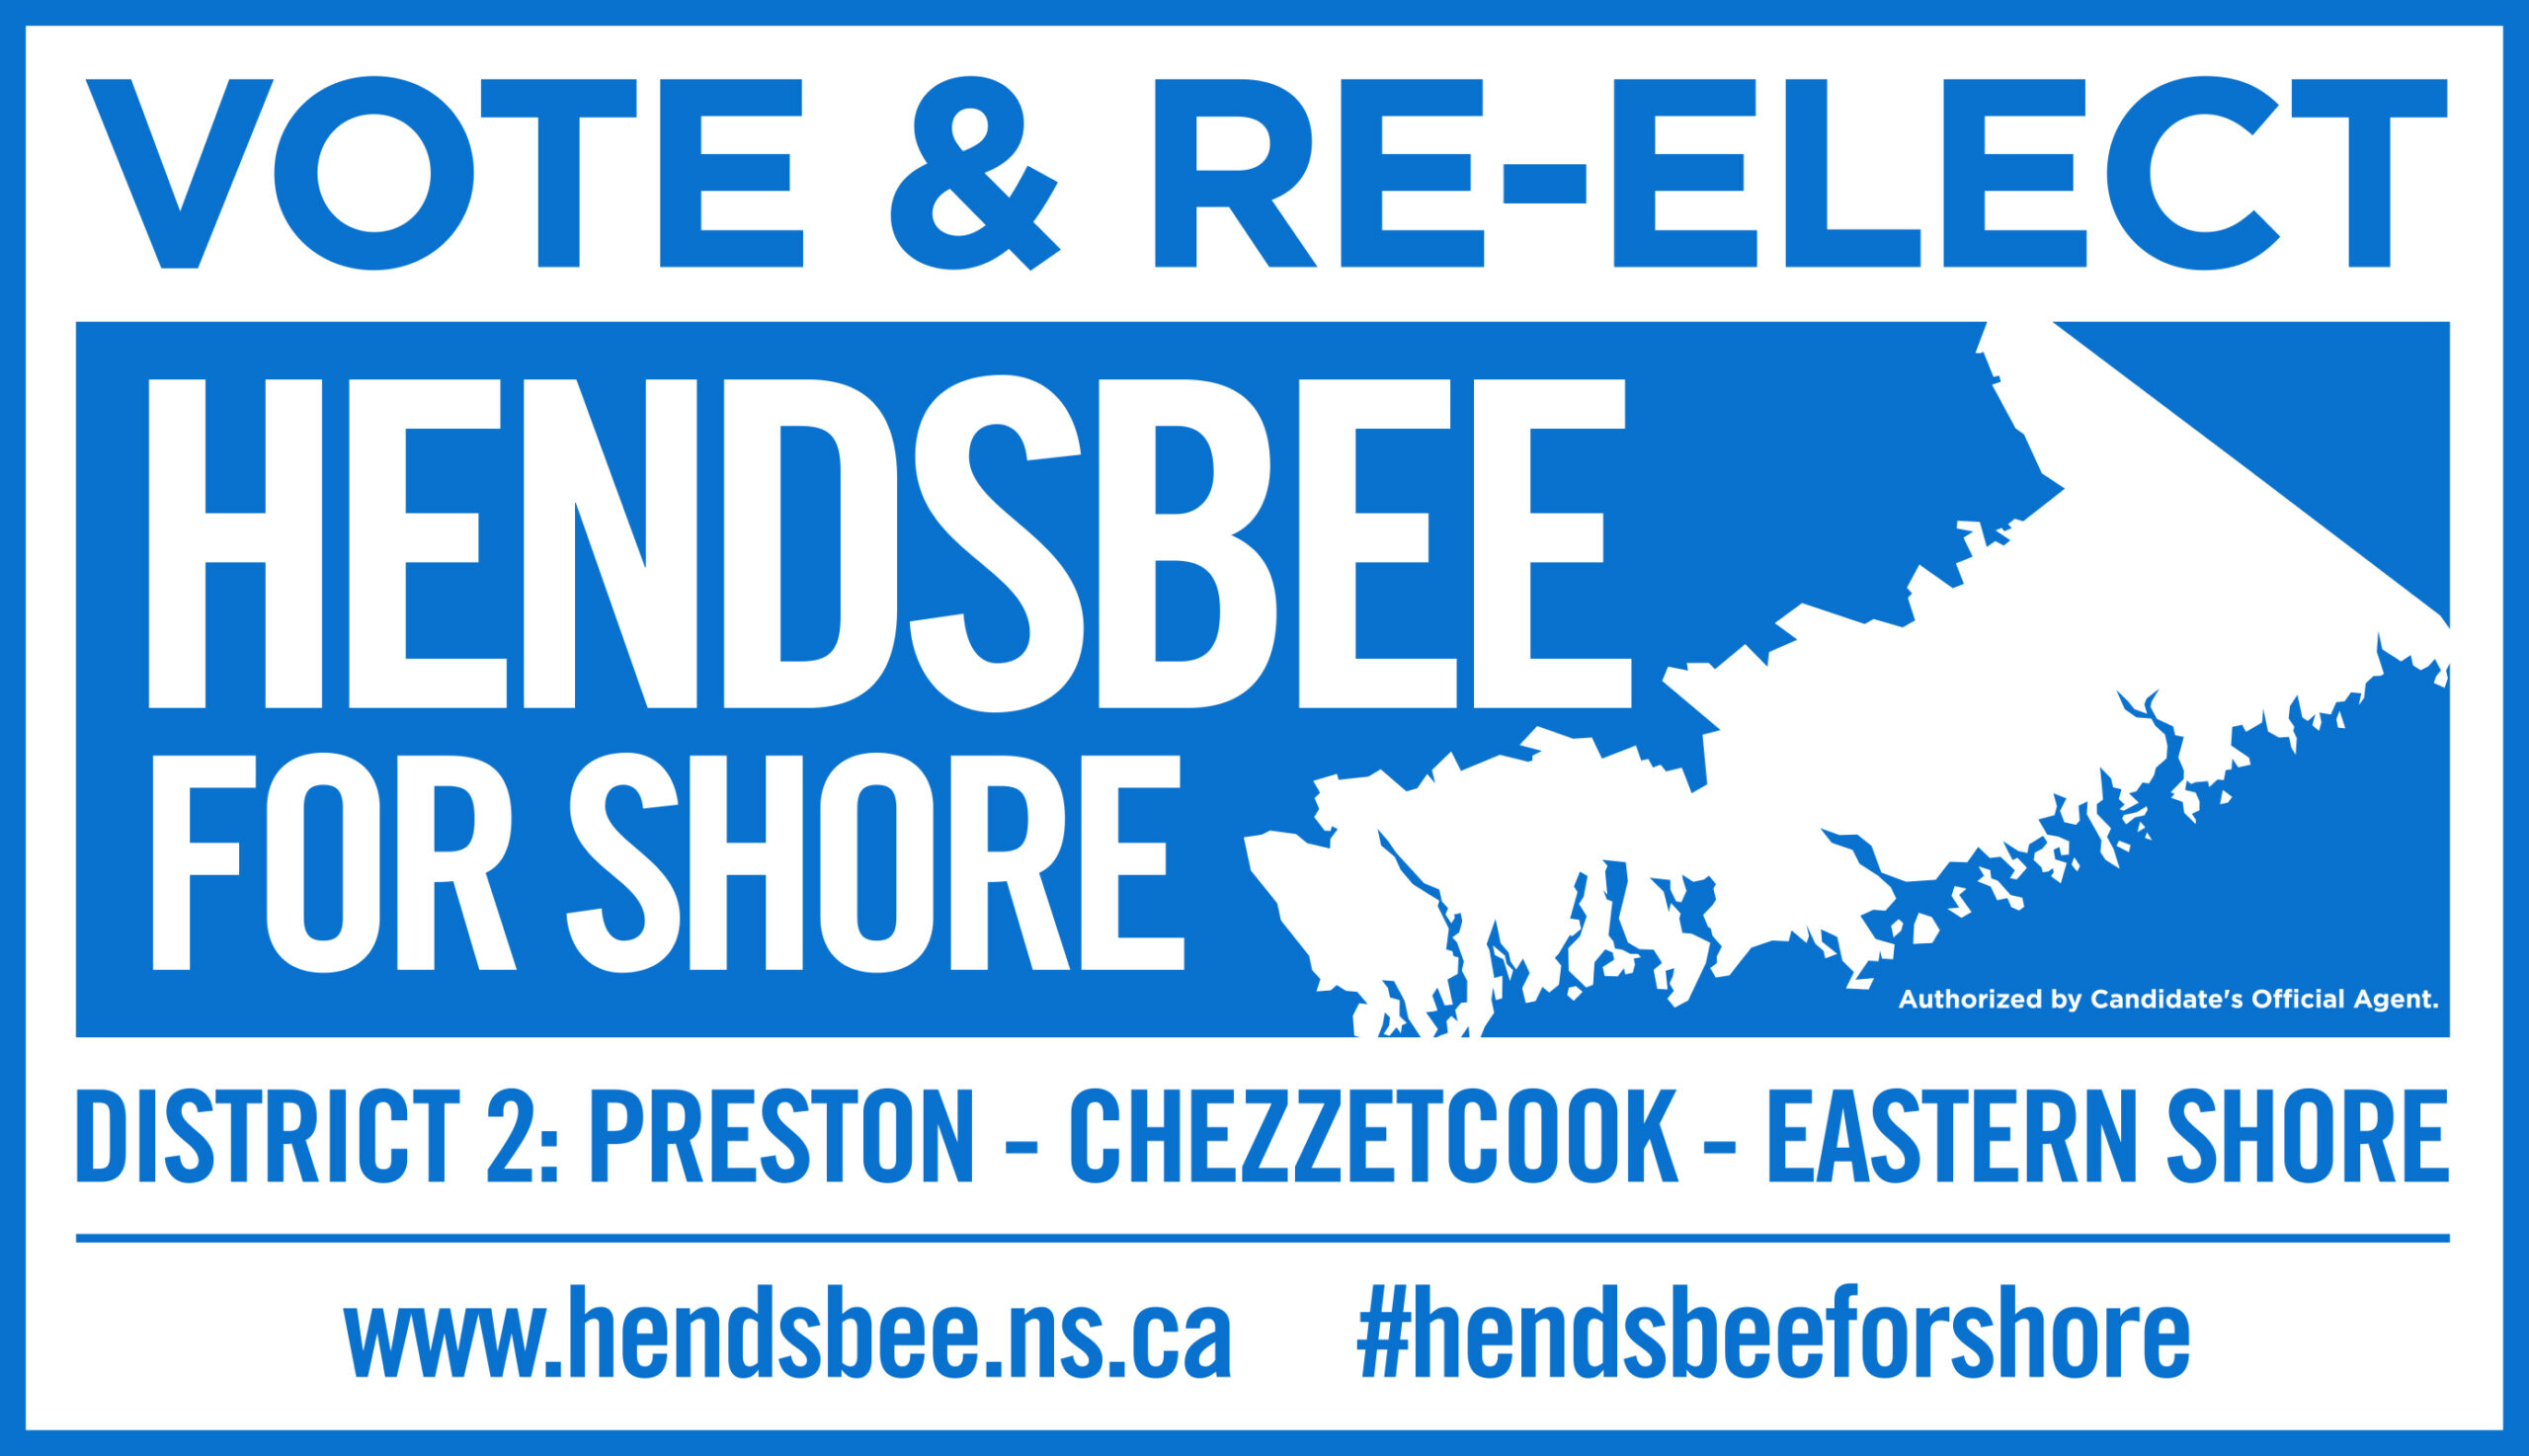 HENDBSEE FOR DISTRICT 2